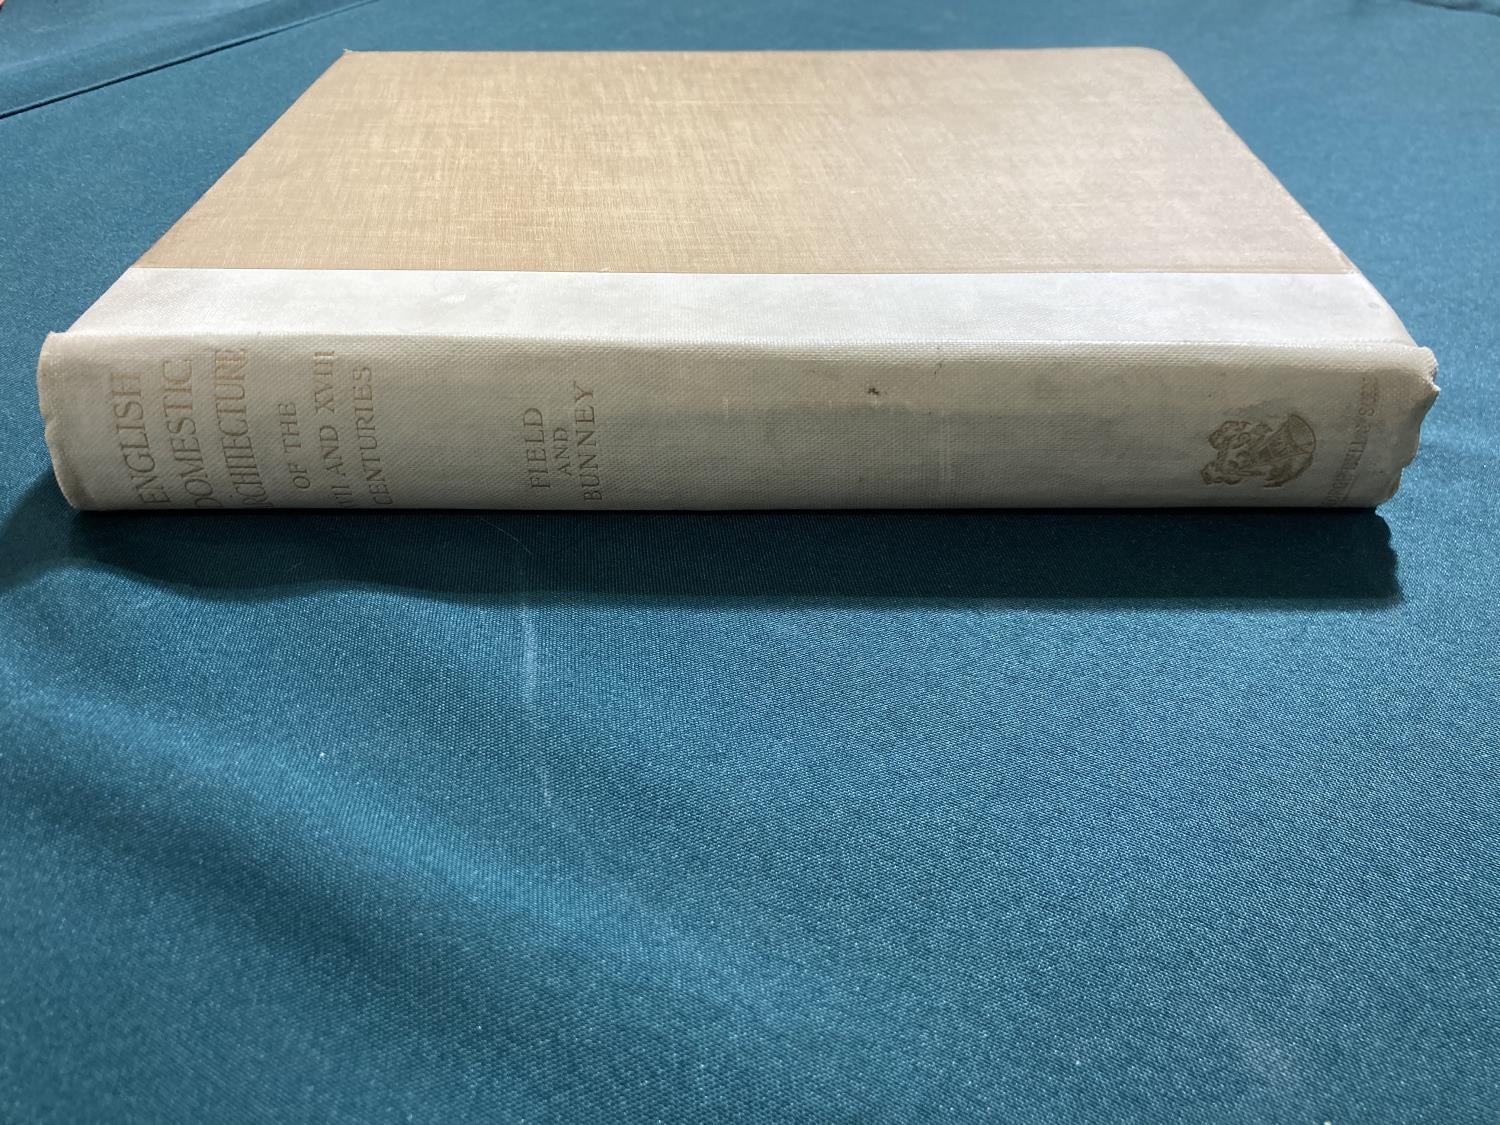 Bolton, Arthur T. The Architecture of Robert and James Adam, 2 volumes, first edition, plates, - Image 7 of 22